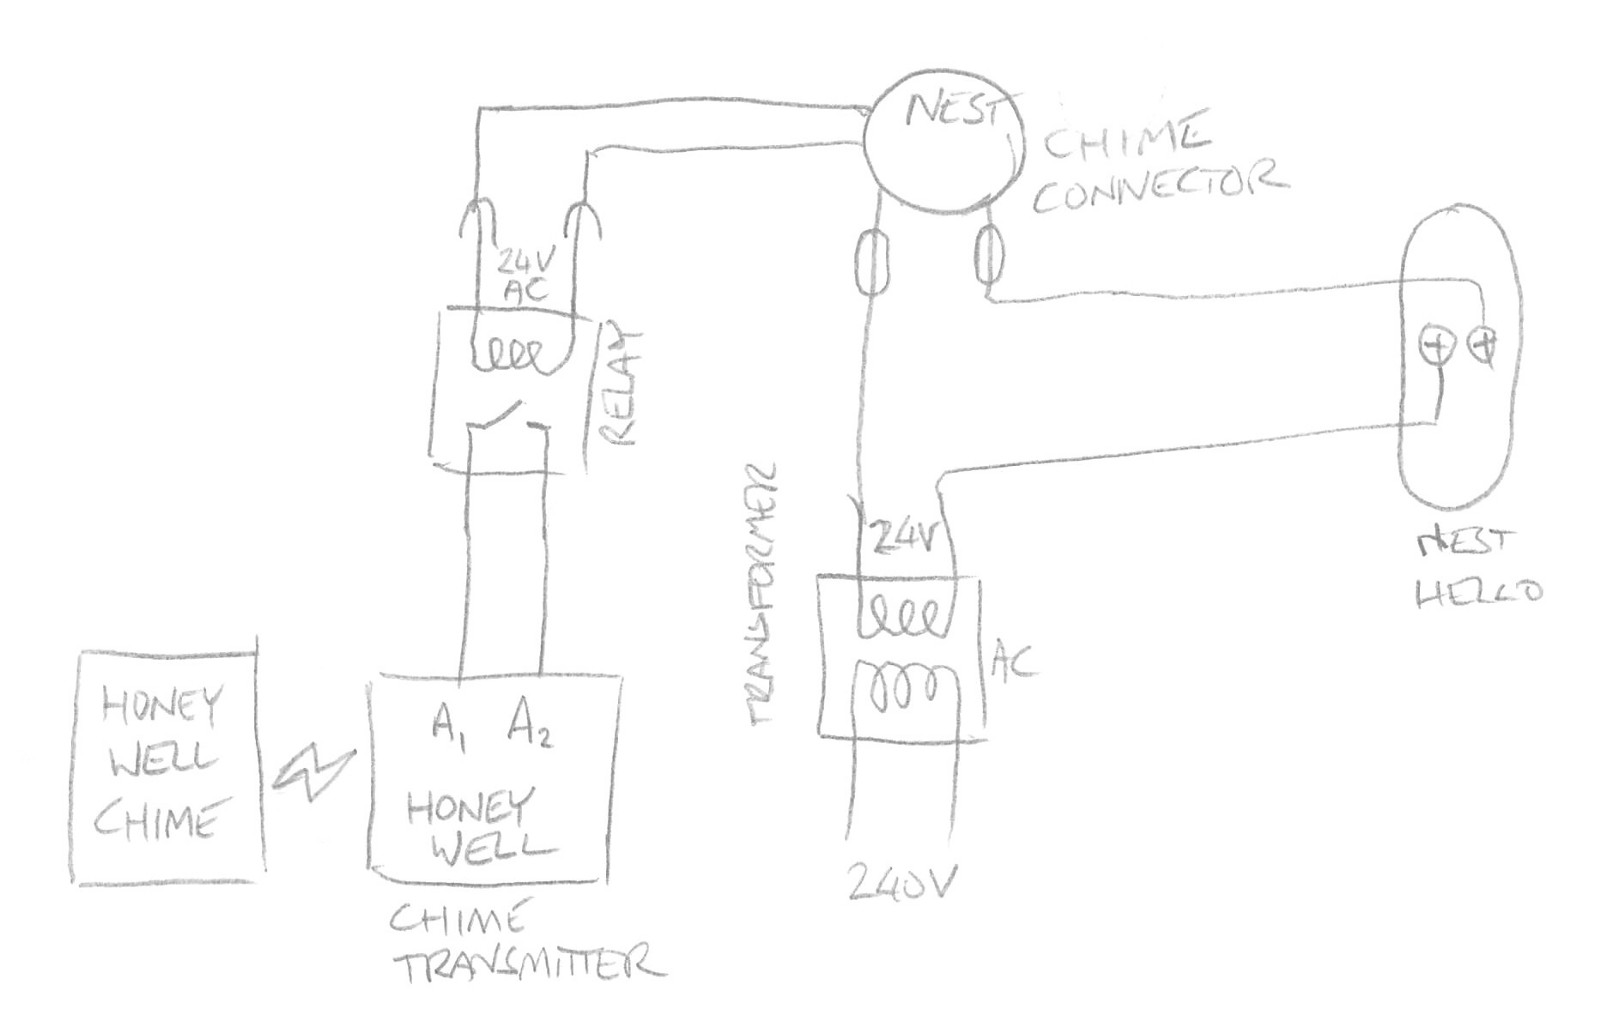 nest 5 wire diagram